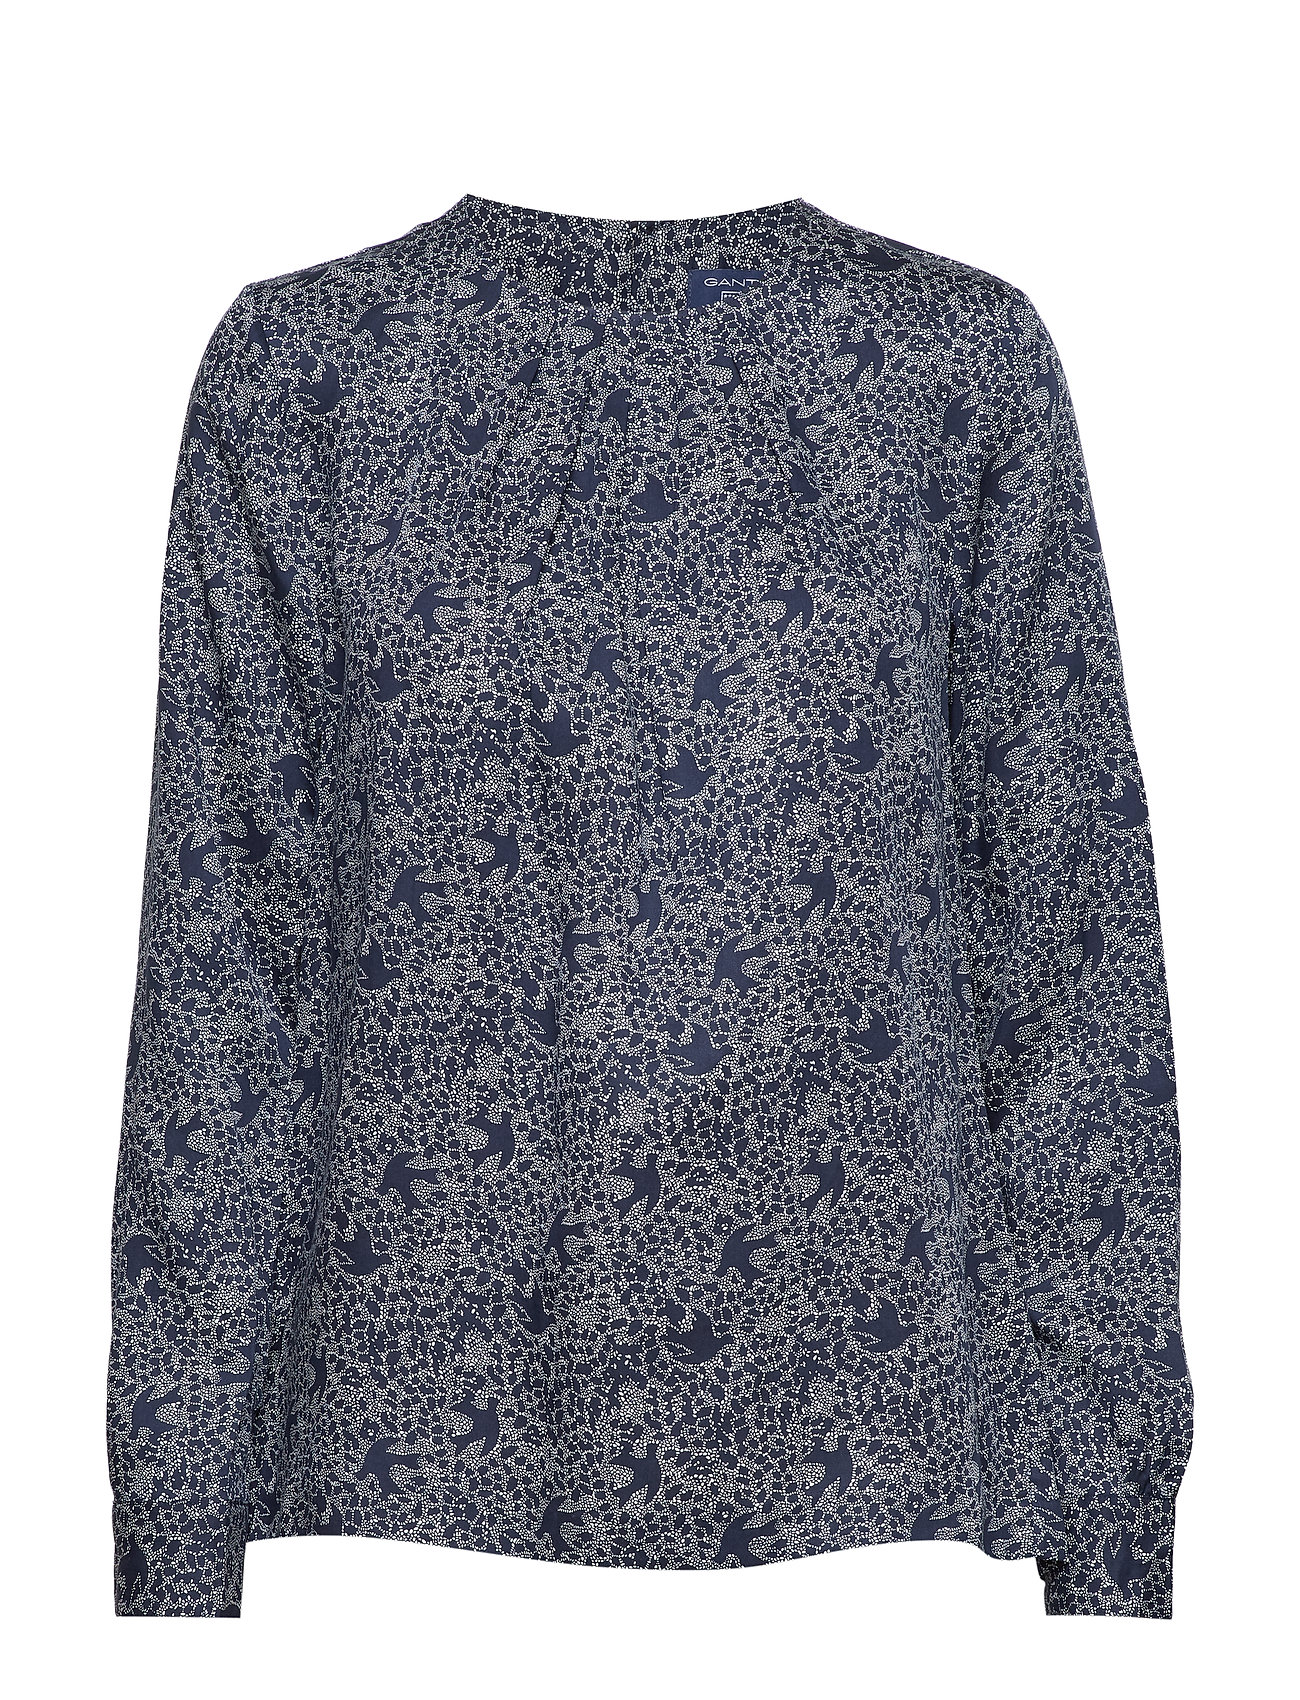 GANT O3. FEATHERWEIGHT PRINTED BLOUSE - MARINE